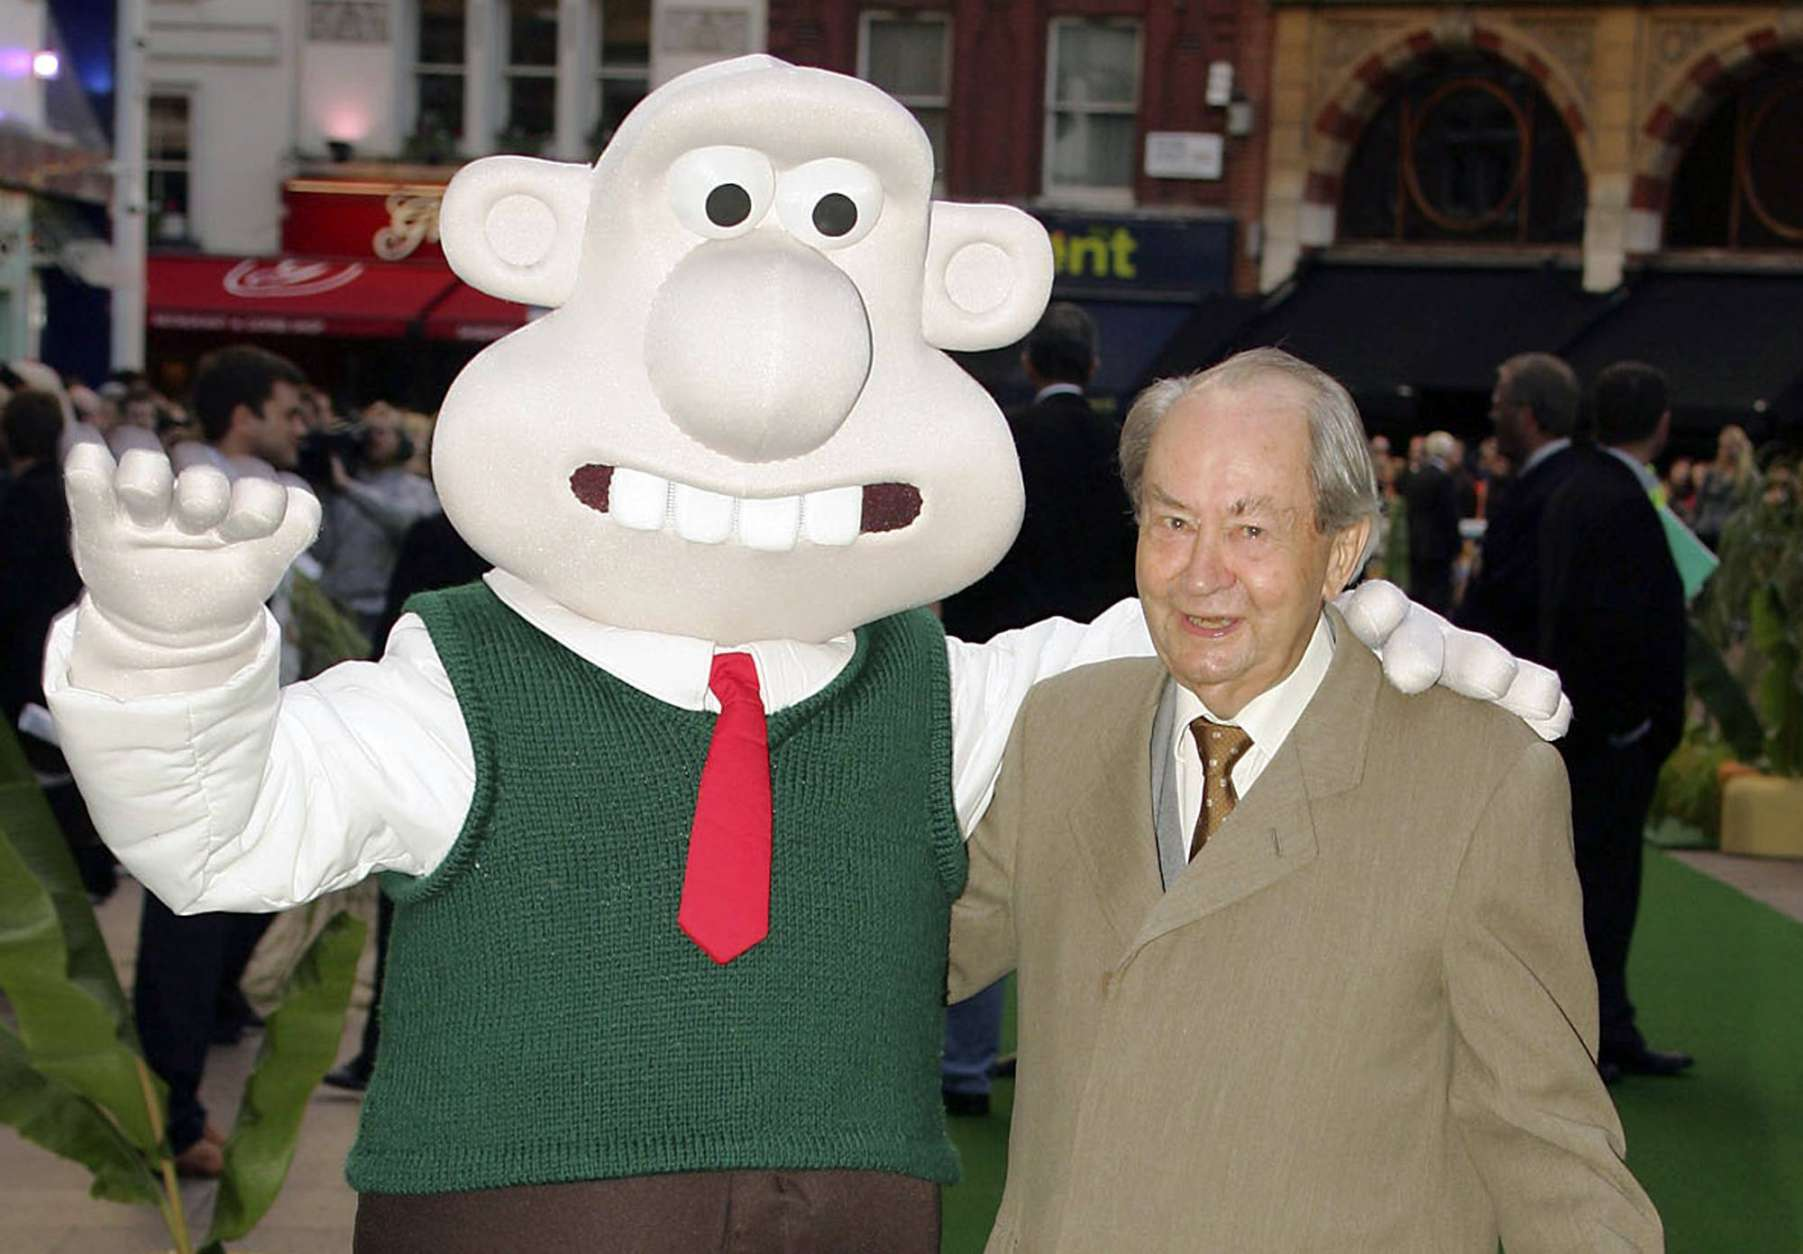 """FILE - In this Sunday, Oct. 2, 2005 file photo, British actor Peter Sallis, who voices the part of Wallace poses with a person dressed as the character 'Wallace' on arrival at the Leicester Square Odeon, London for the premiere of Wallace & Grommit: The Curse of the Were-Rabbit. Sallis, who played irrepressible, cheese-loving inventor Wallace in the """"Wallace and Gromit"""" cartoons, has died. He was 96. Sallis' agents, Jonathan Altaras Associates, say he died Friday, June 2, 2017 in London. (AP Photo/Paul Ashby, File)"""